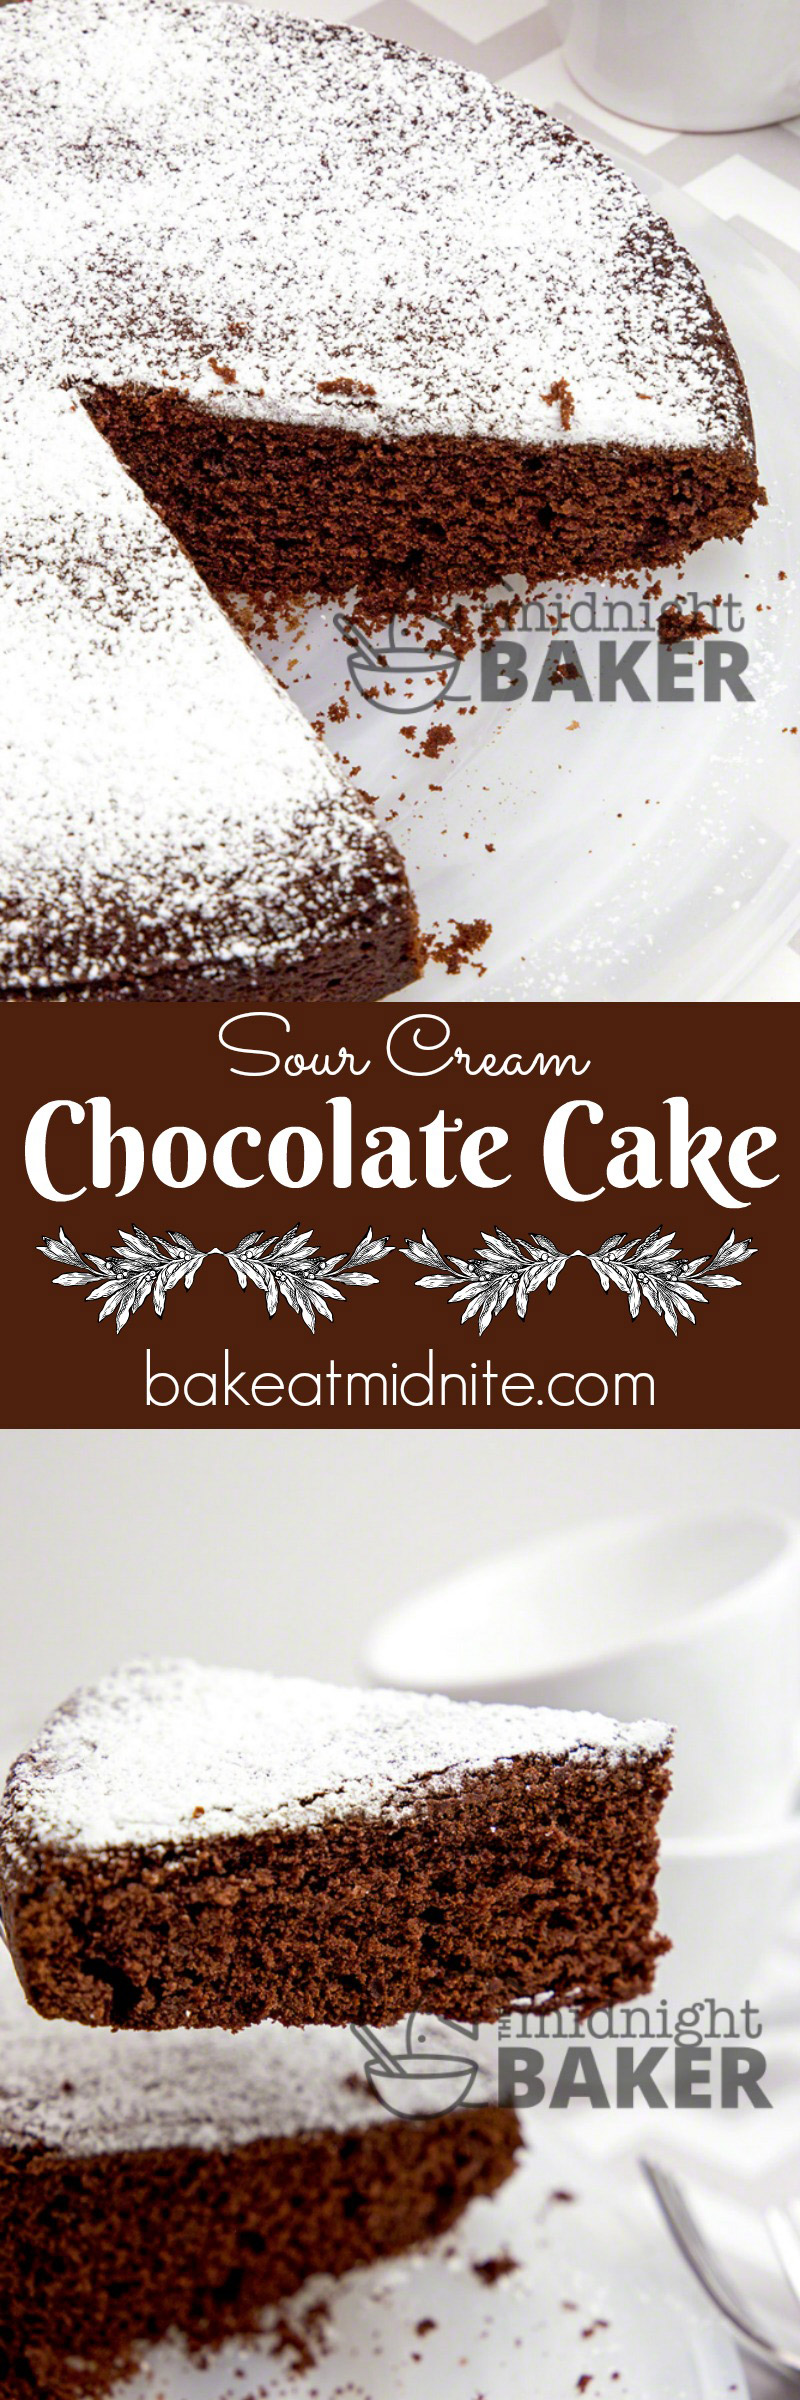 Rich sour cream gives this chocolate cake it's great texture and flavor. It's rich so no icing is necessary!